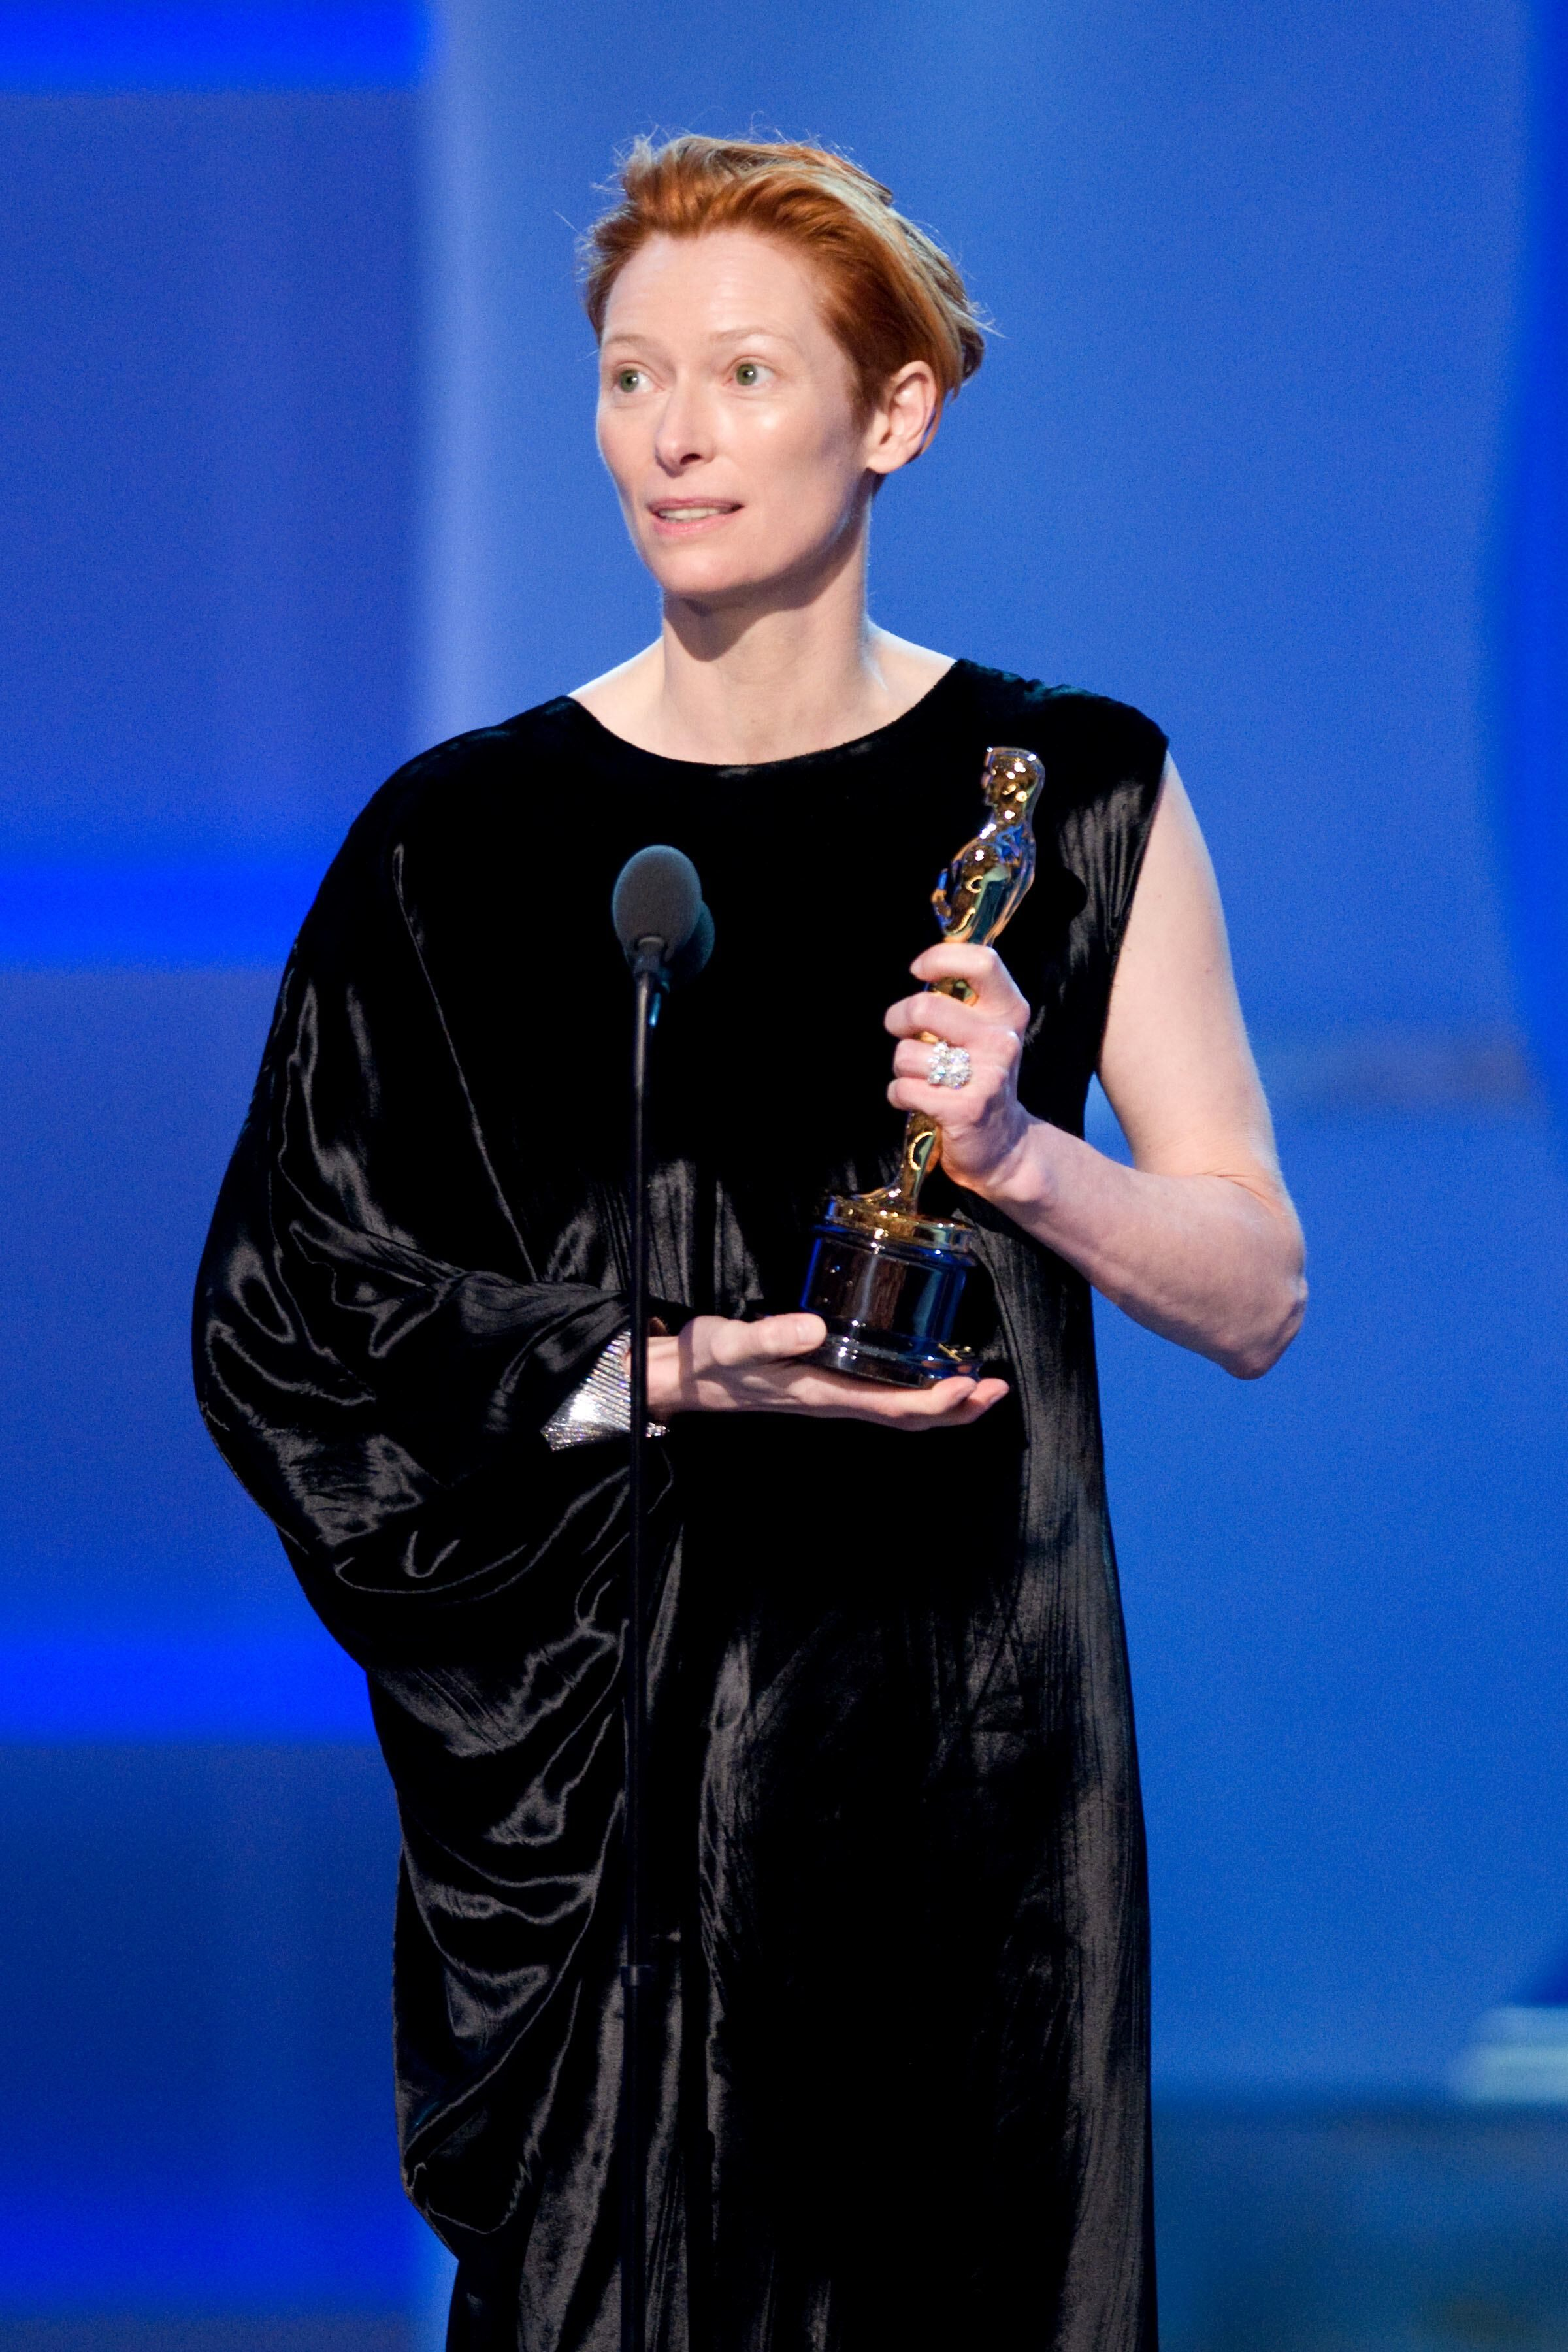 Tilda Swinton accepts the Academy Award for Best Supporting Actress.